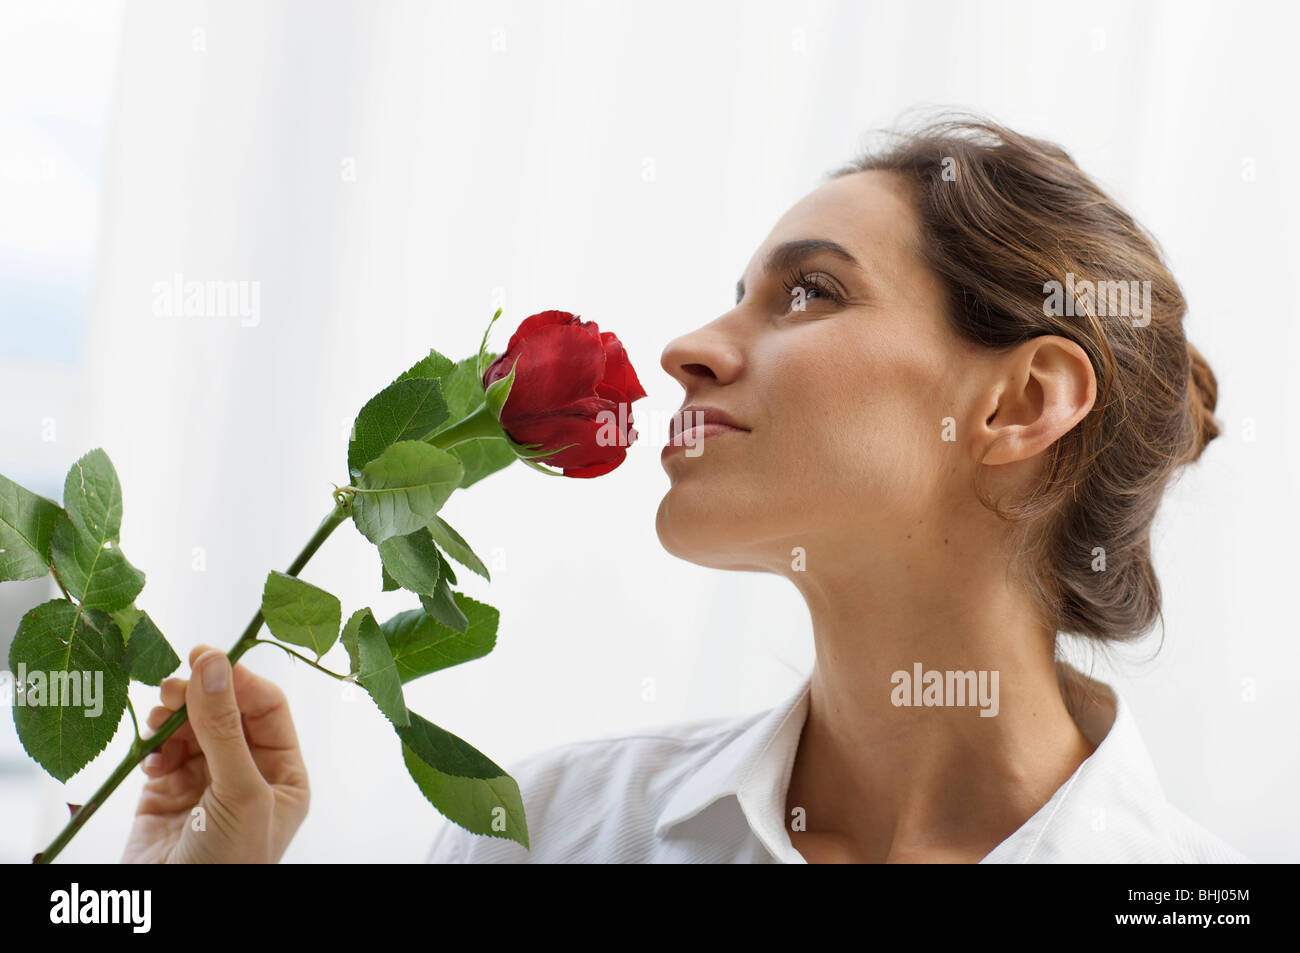 lady adoring the scent of a rose - Stock Image